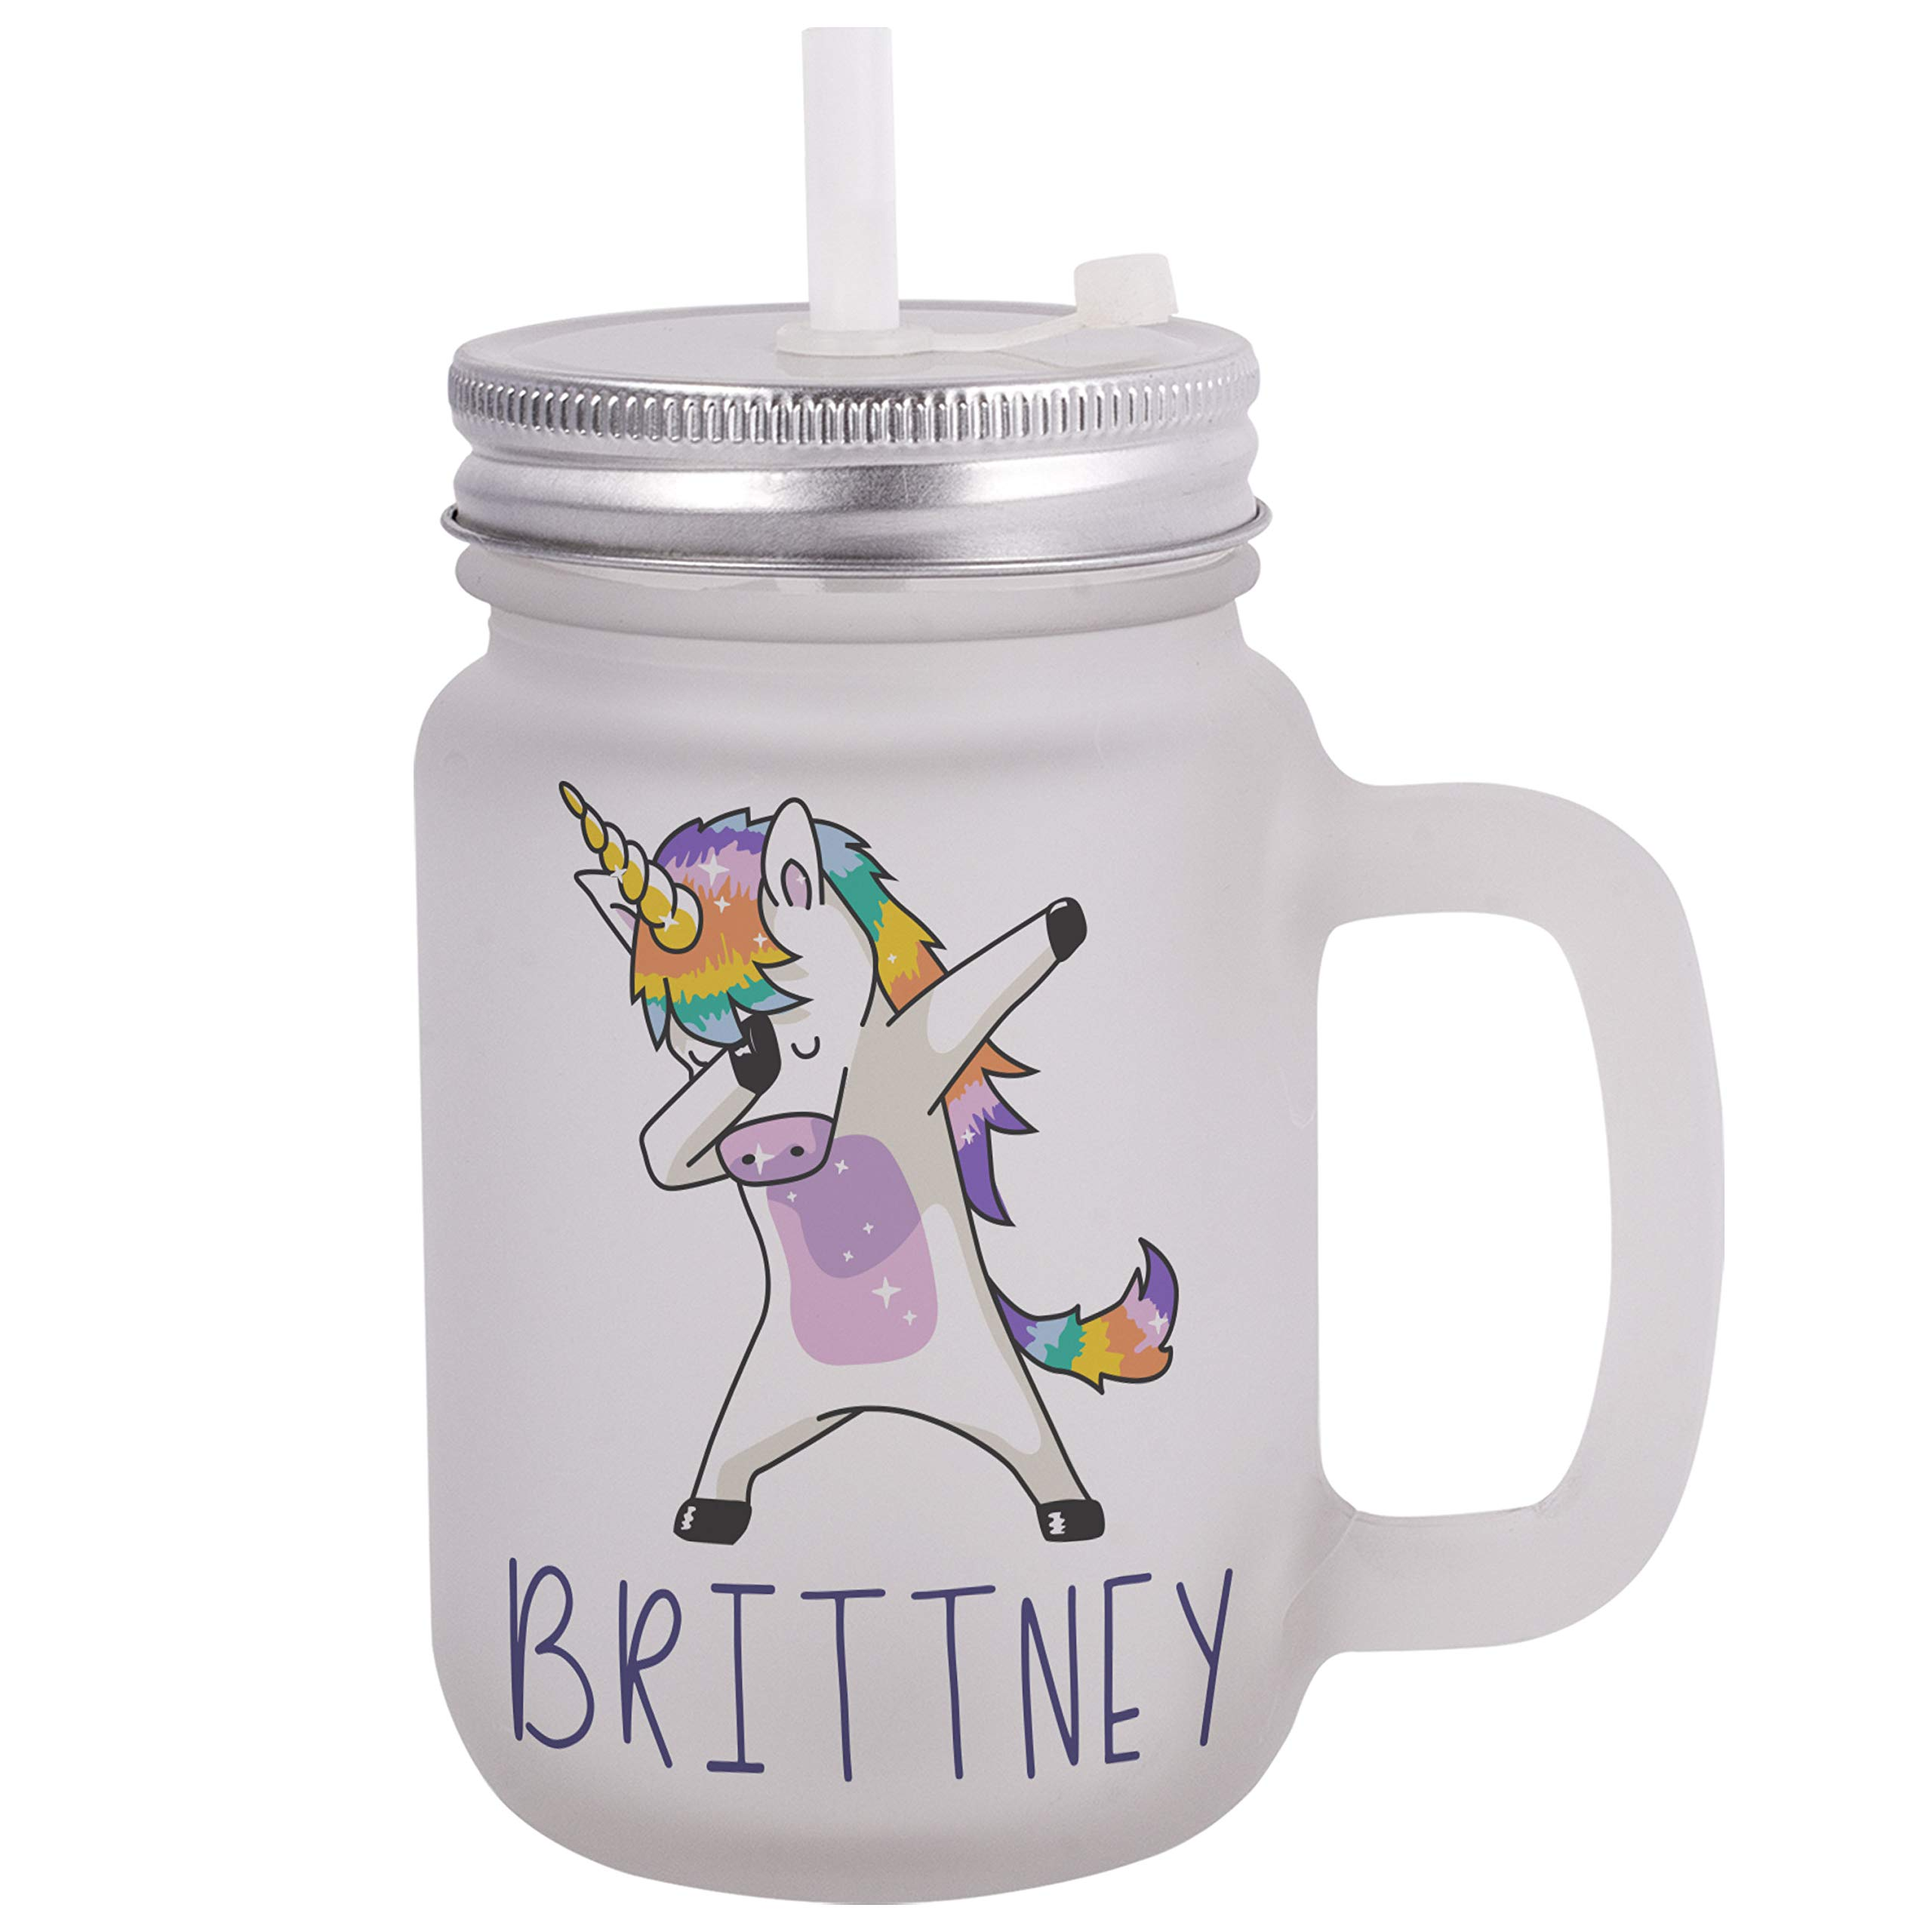 Personalized Gifts Dabbing Unicorn Coffee Mug - 12oz Frosted Mason Jar Coffee Mug with Lid and Straw -Birthday Gifts, Christmas Gifts, Mother's Day Gifts, Father's Day Gifts, Funny Mug for Kids by USA Custom Gifts